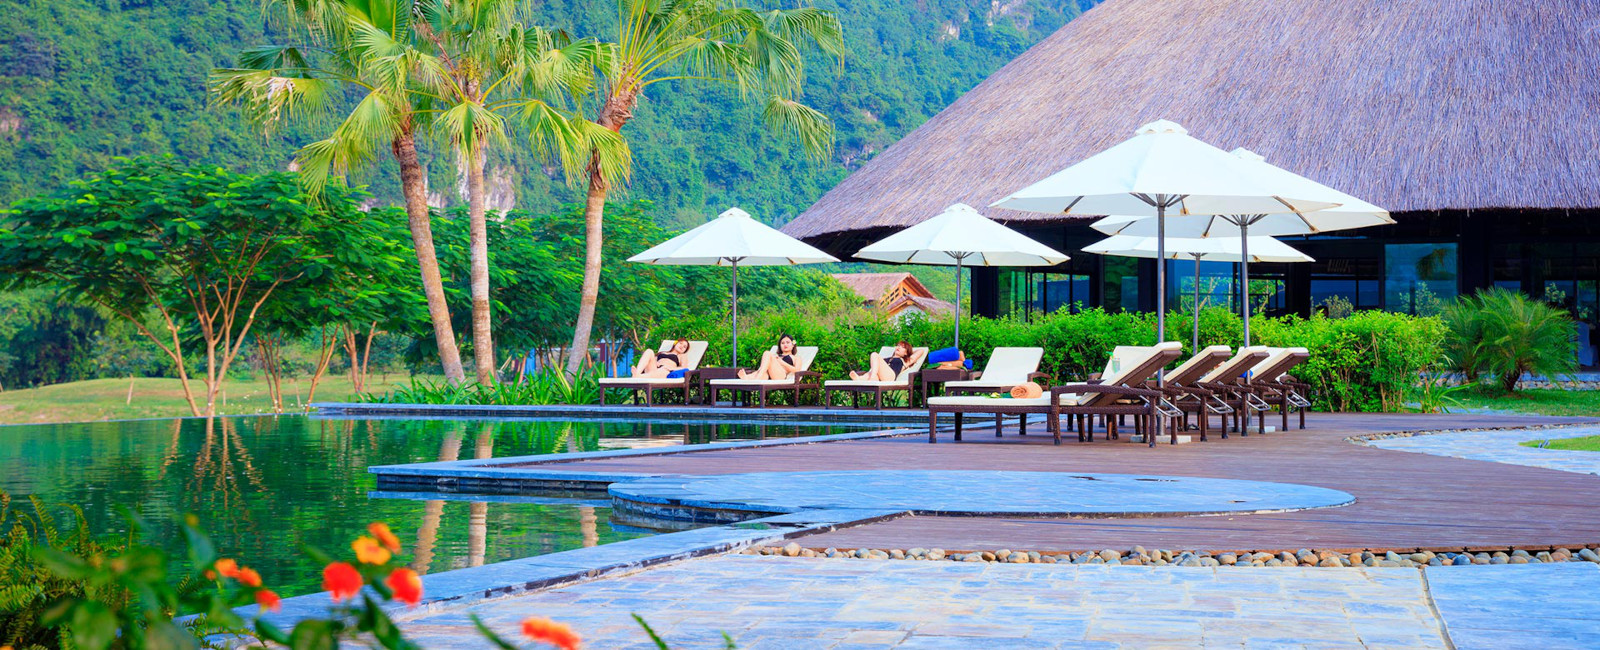 Image of the outdoor pool at the Serena Resort Kim Boi in Vietnam